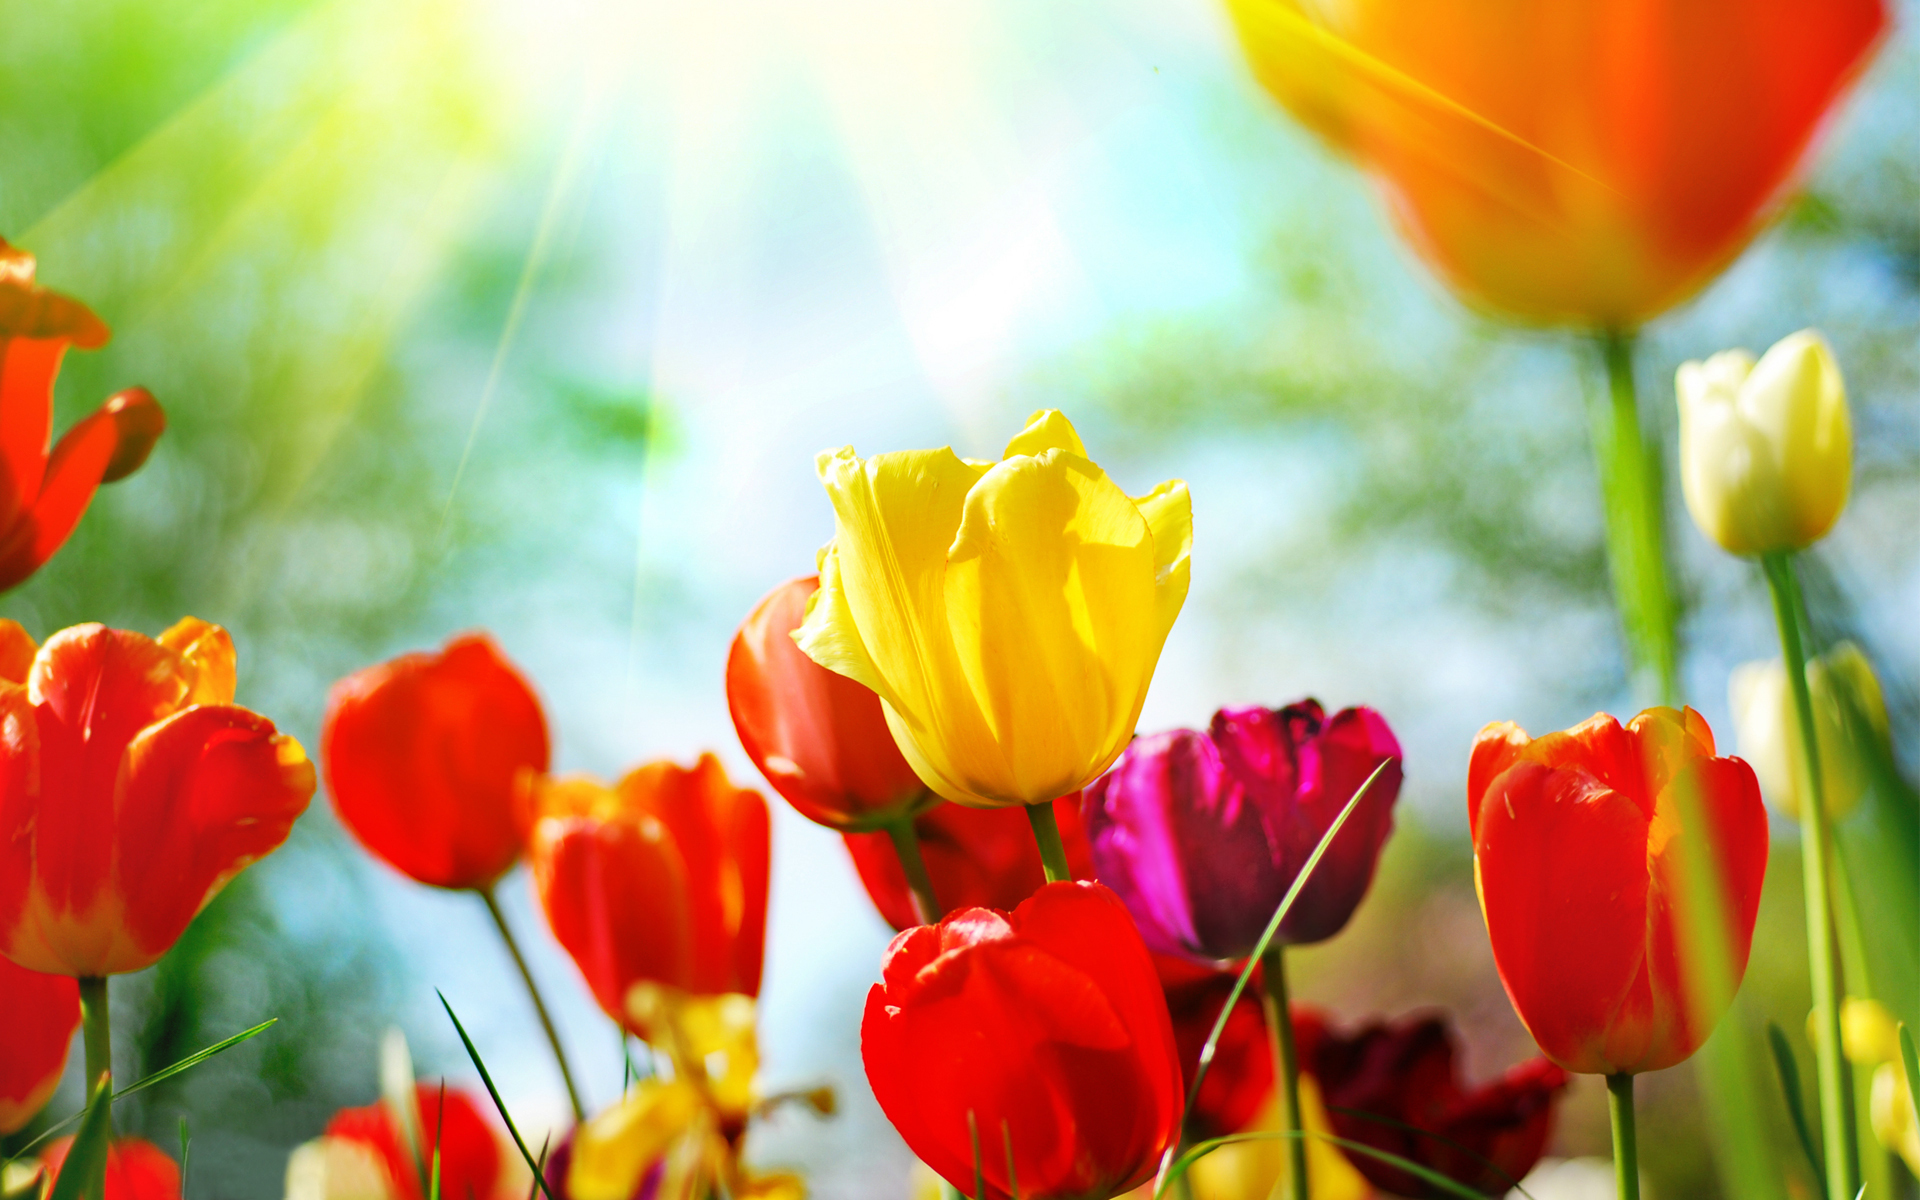 Spring background download 1920x1200